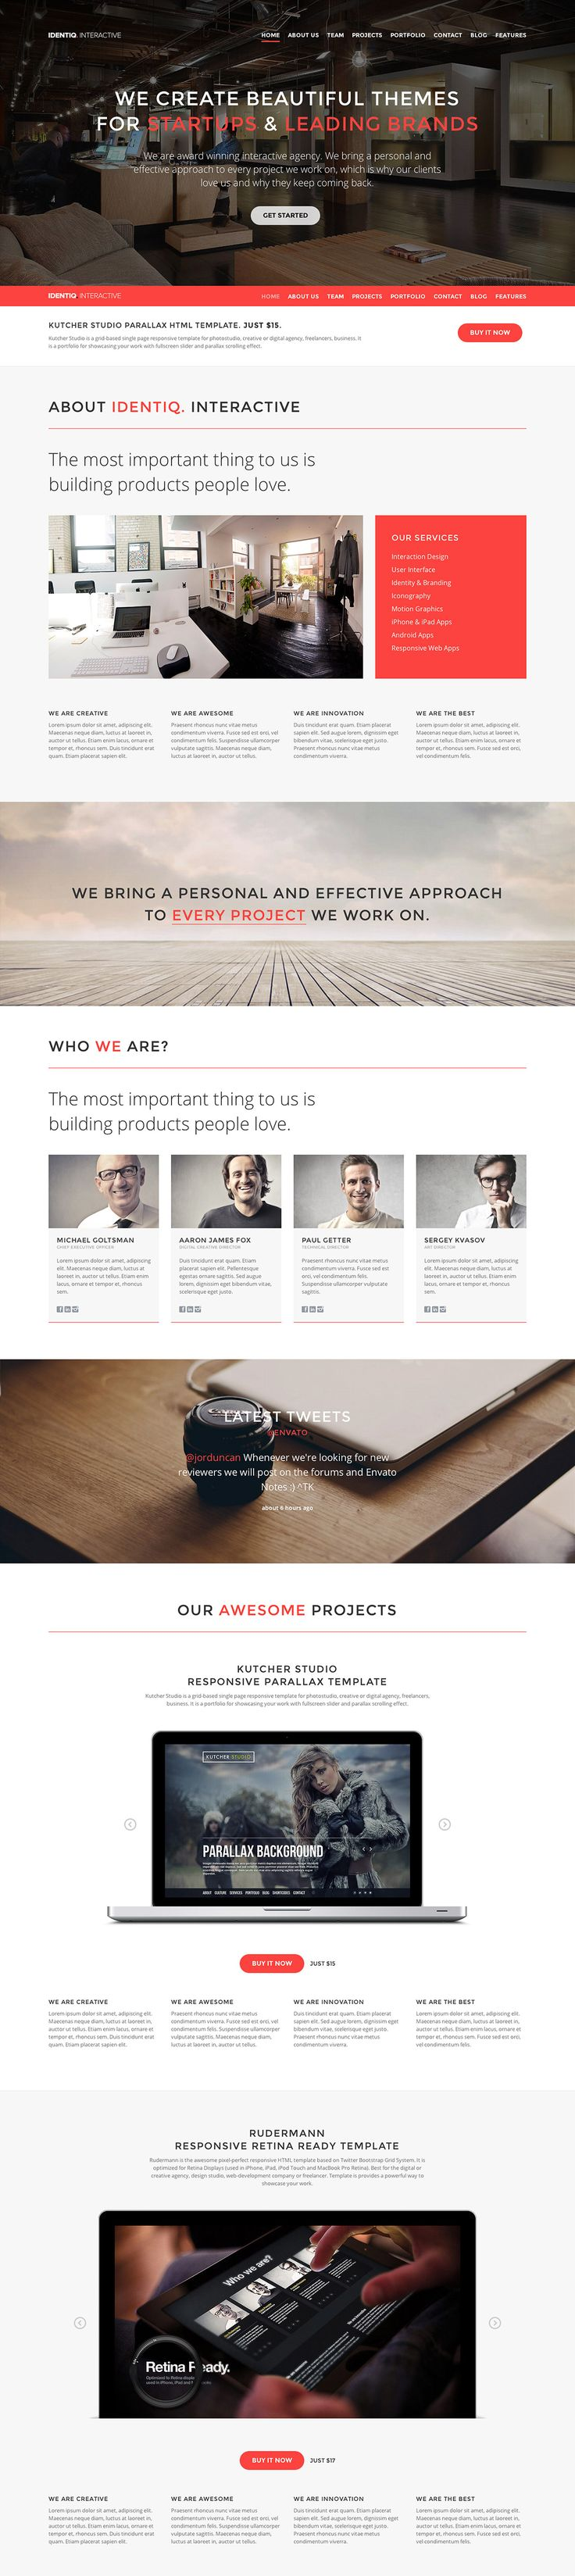 best images about web design inspiration landing identiq is a slick responsive one page template for any creative studio or business